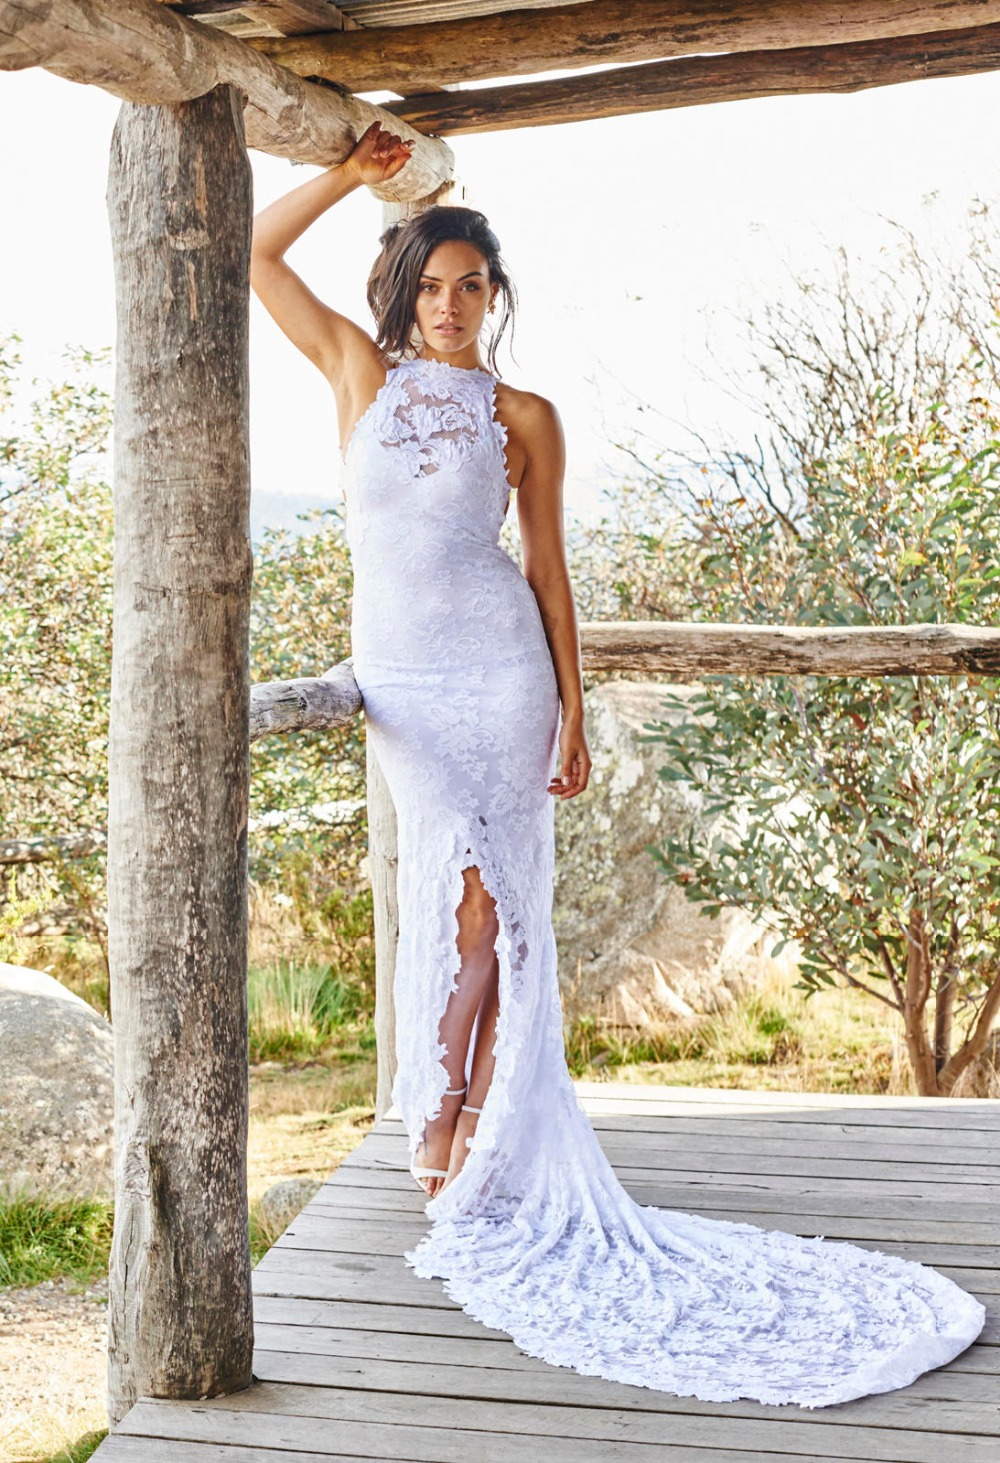 Buy boho country style high neck lace for Bohemian style wedding dresses for sale